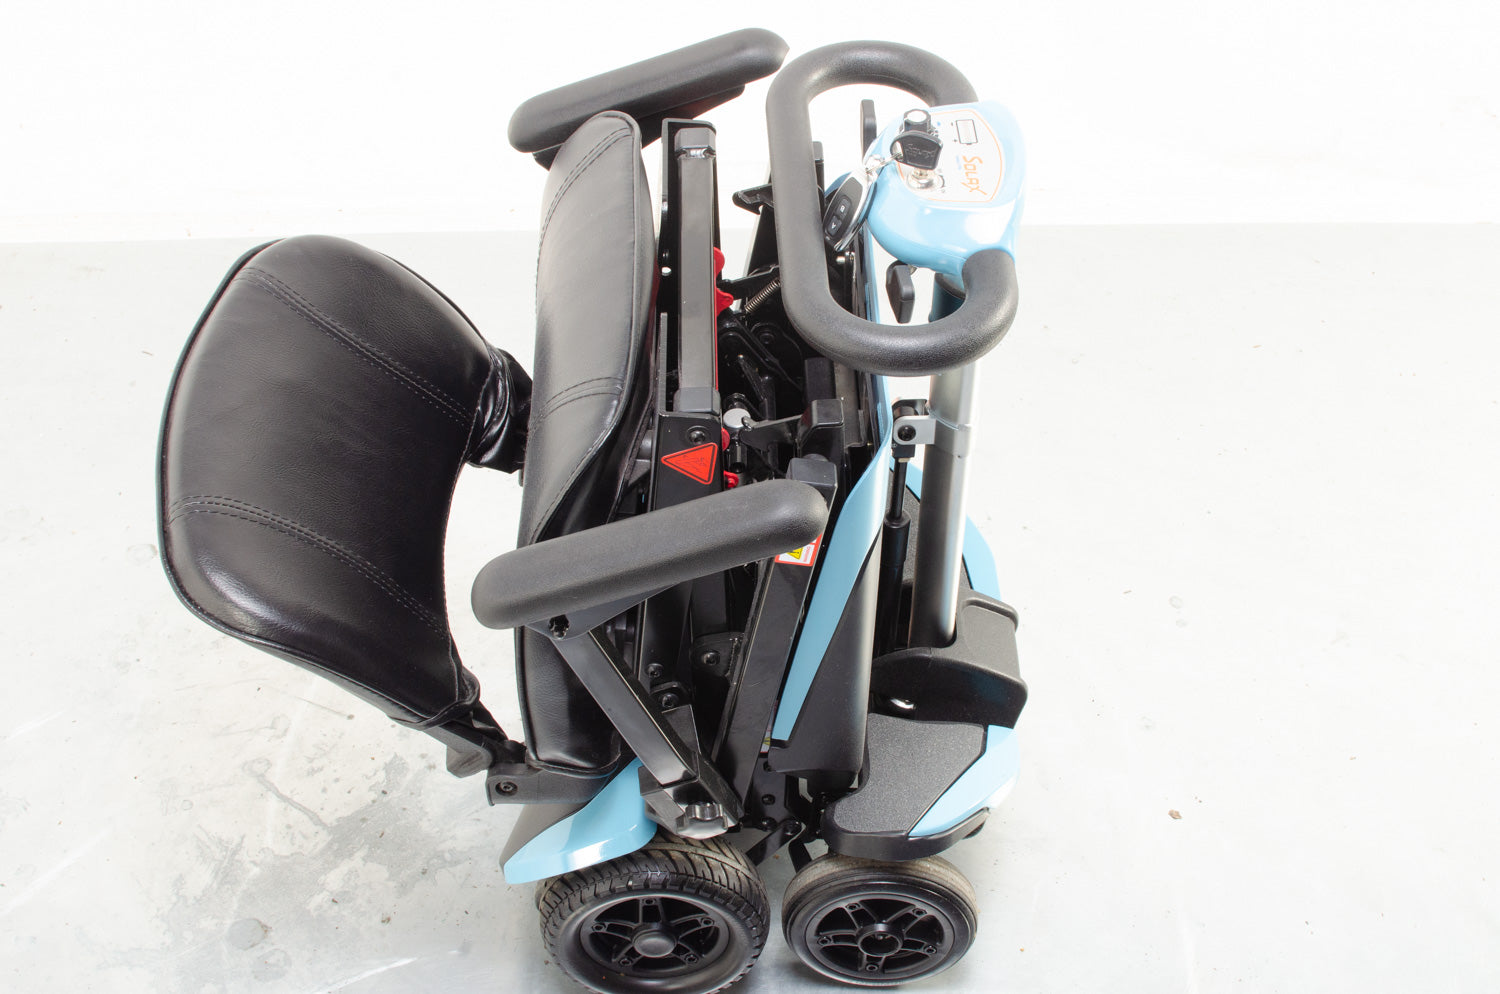 2018 Monarch Smarti 4mph Remote Auto Folding Mobility Scooter Baby Blue